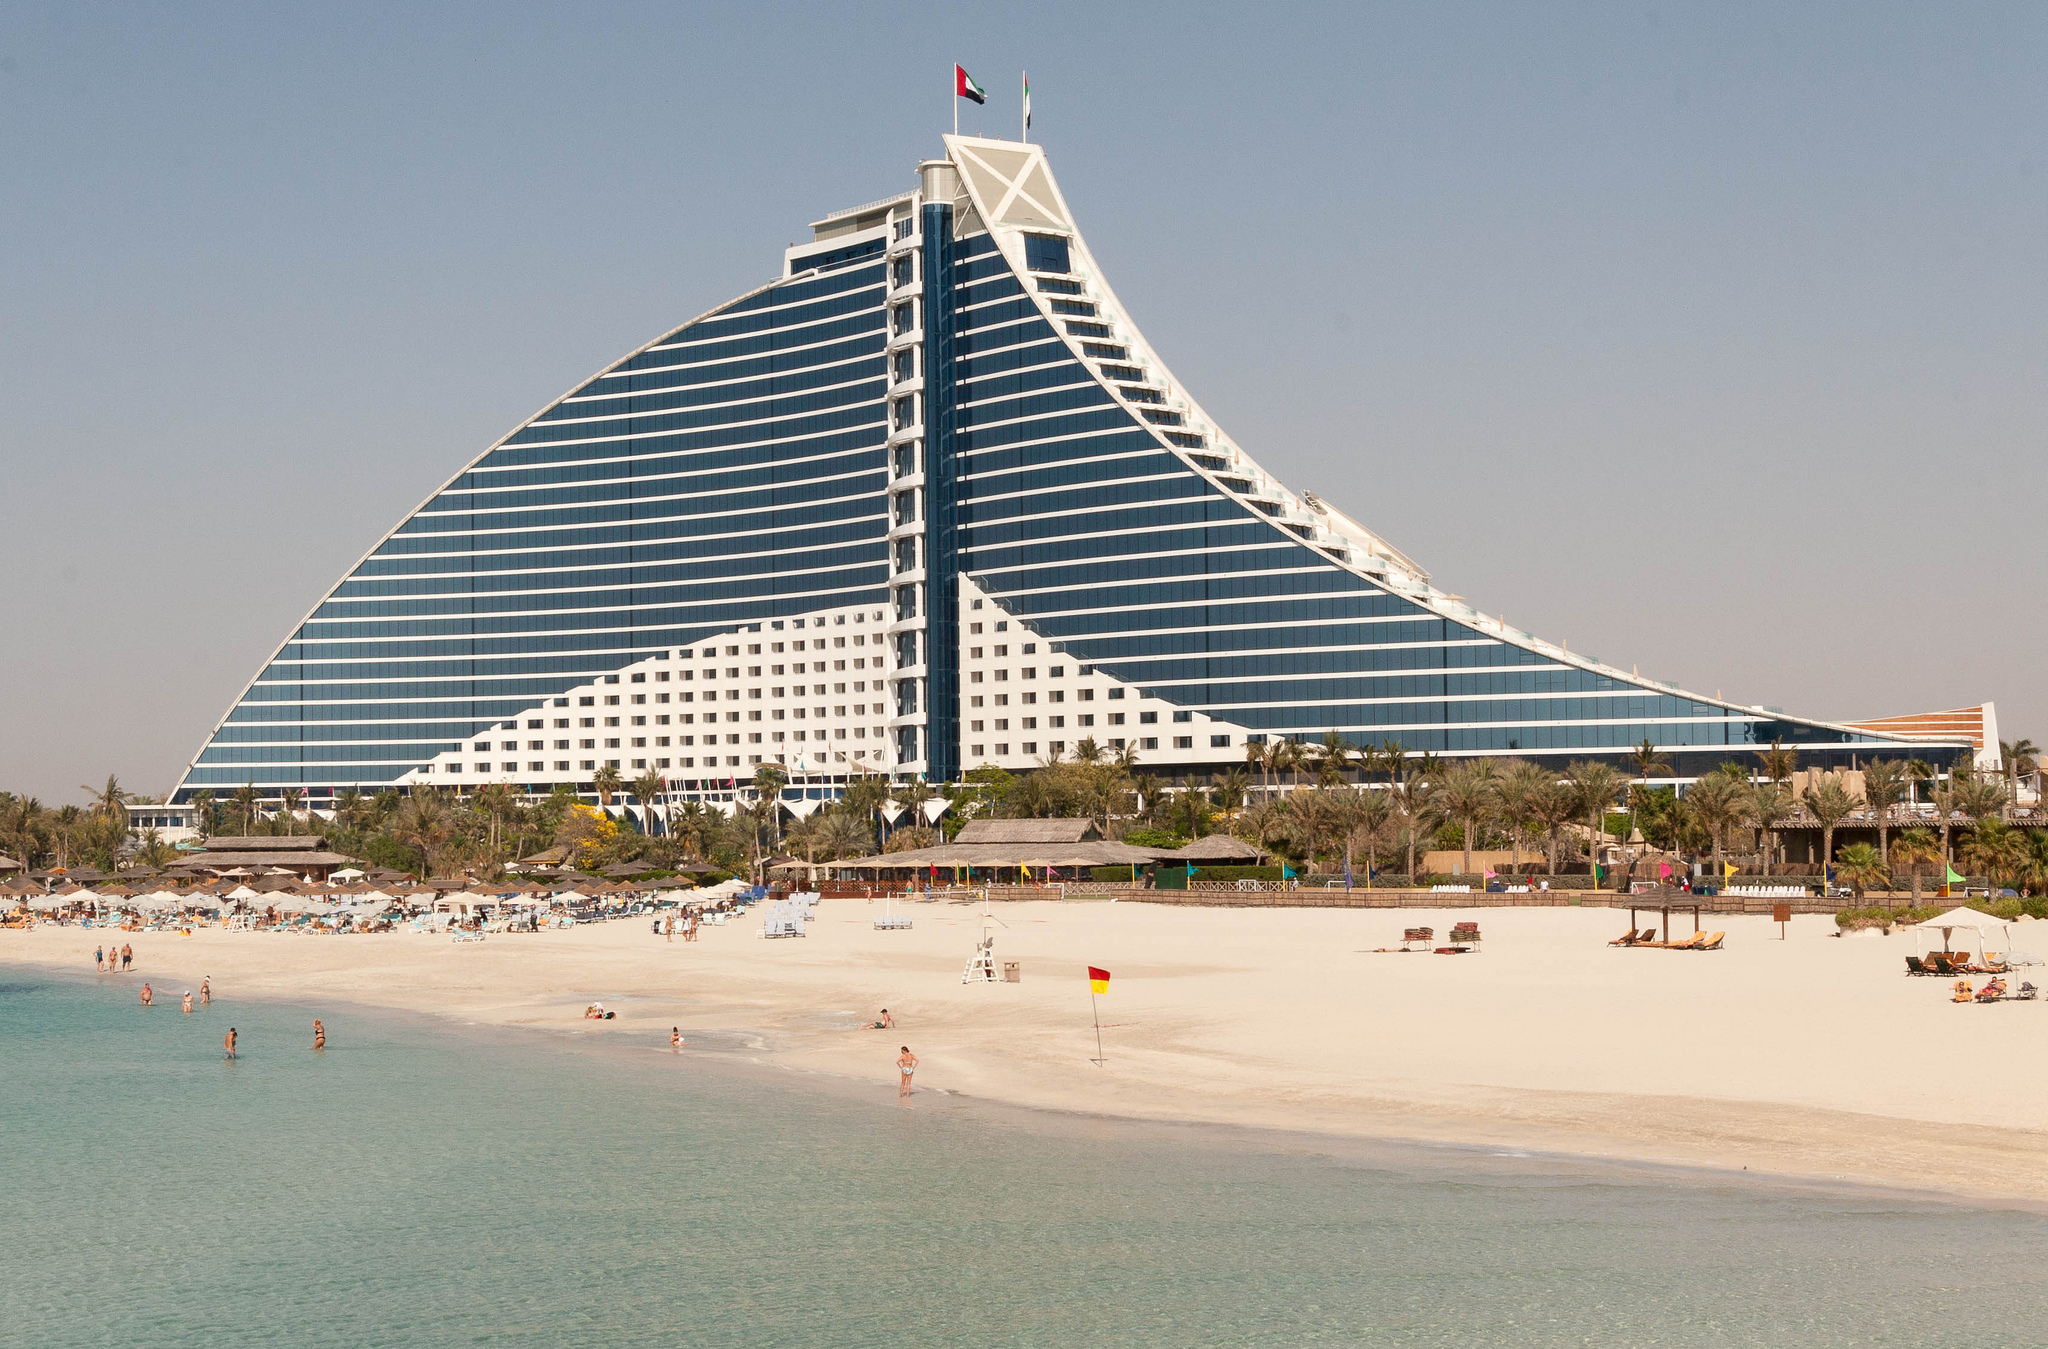 Jumeirah beach beach in dubai thousand wonders for Dubai hotels near beach